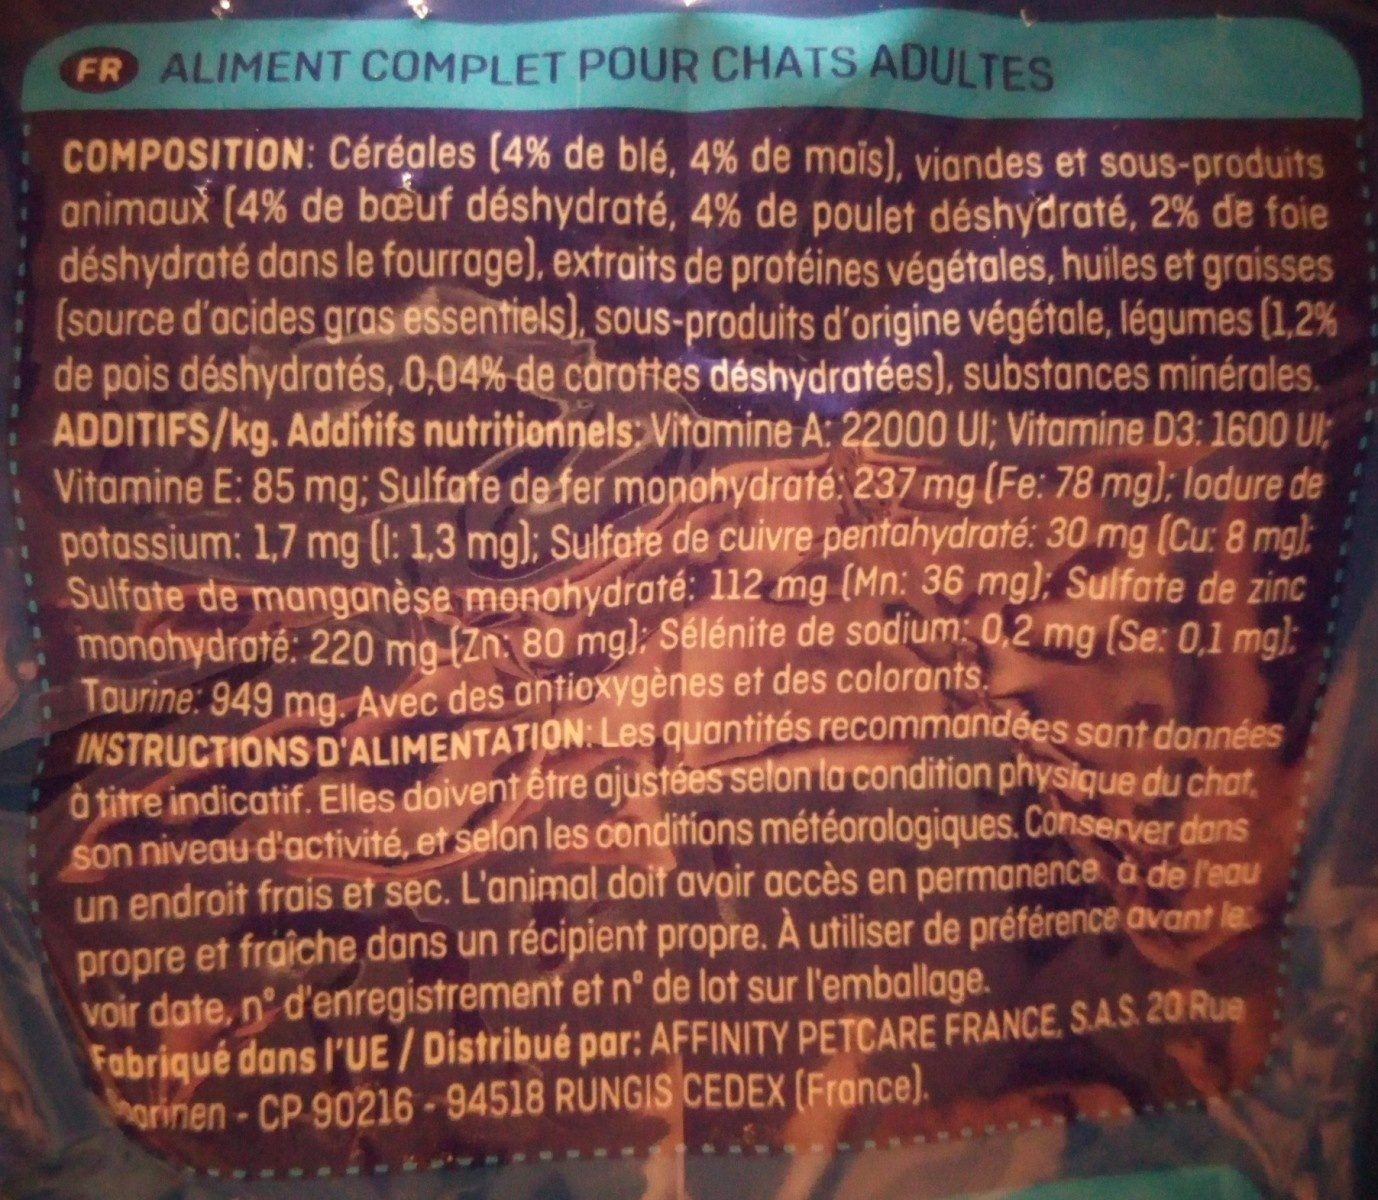 Croquettes Excel Roll - Ingredients